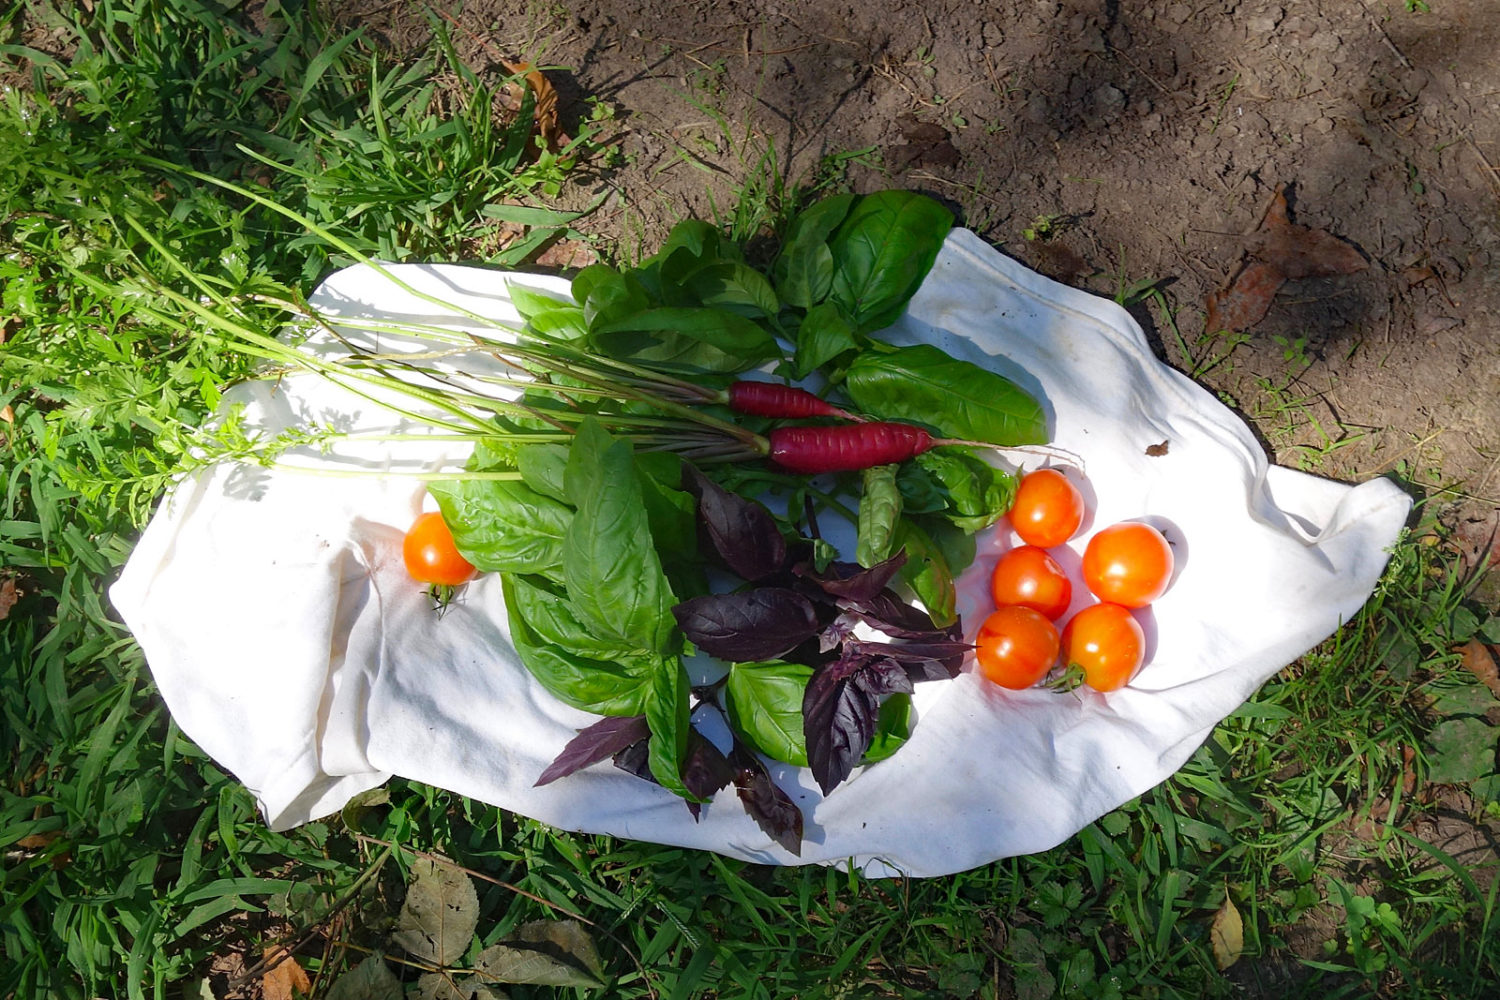 Carrots, tomatoes and basil from garden on my t-shirt